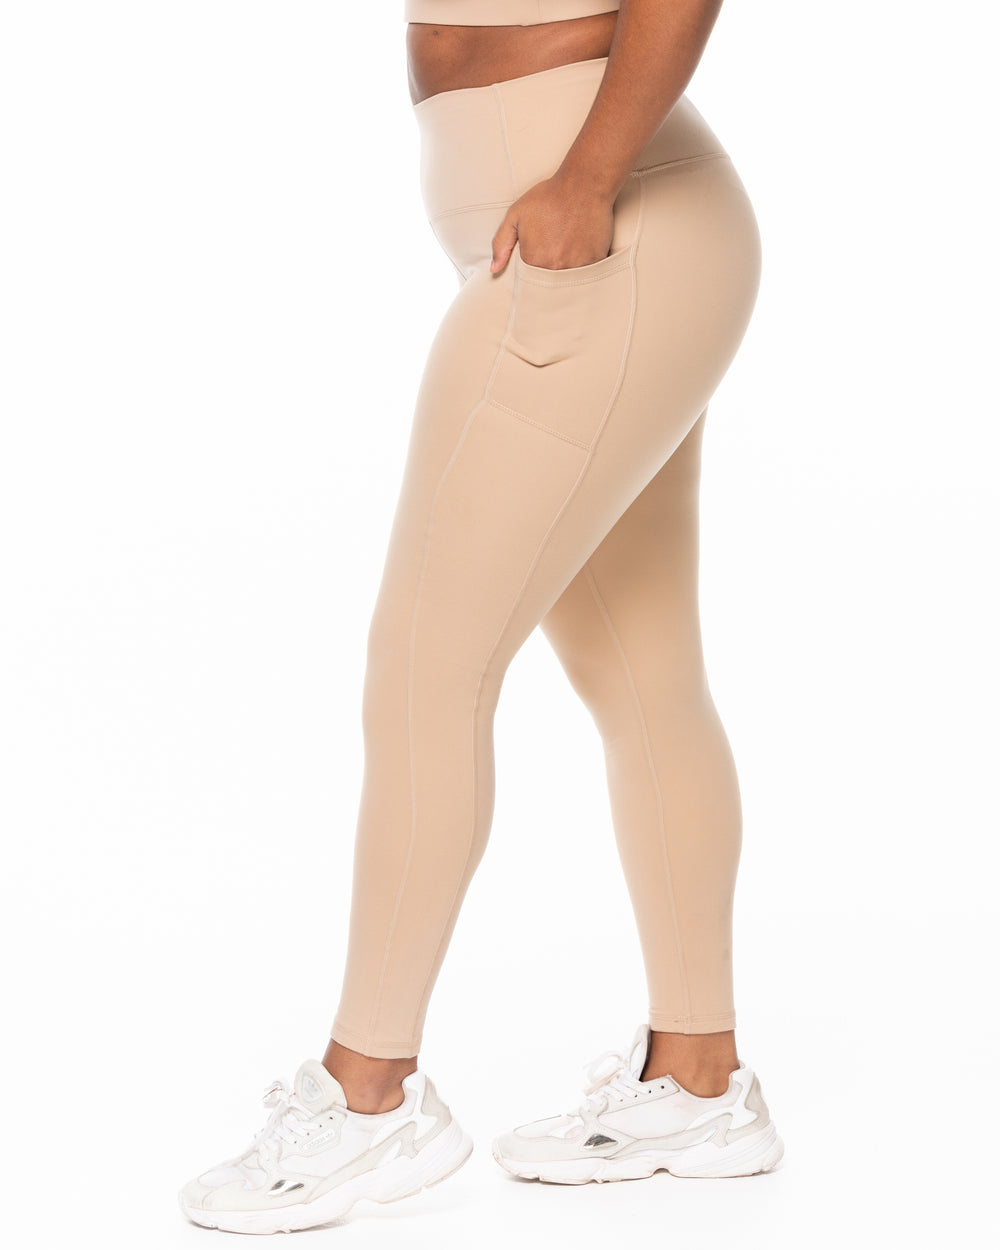 All Day Leggings - Biscotti